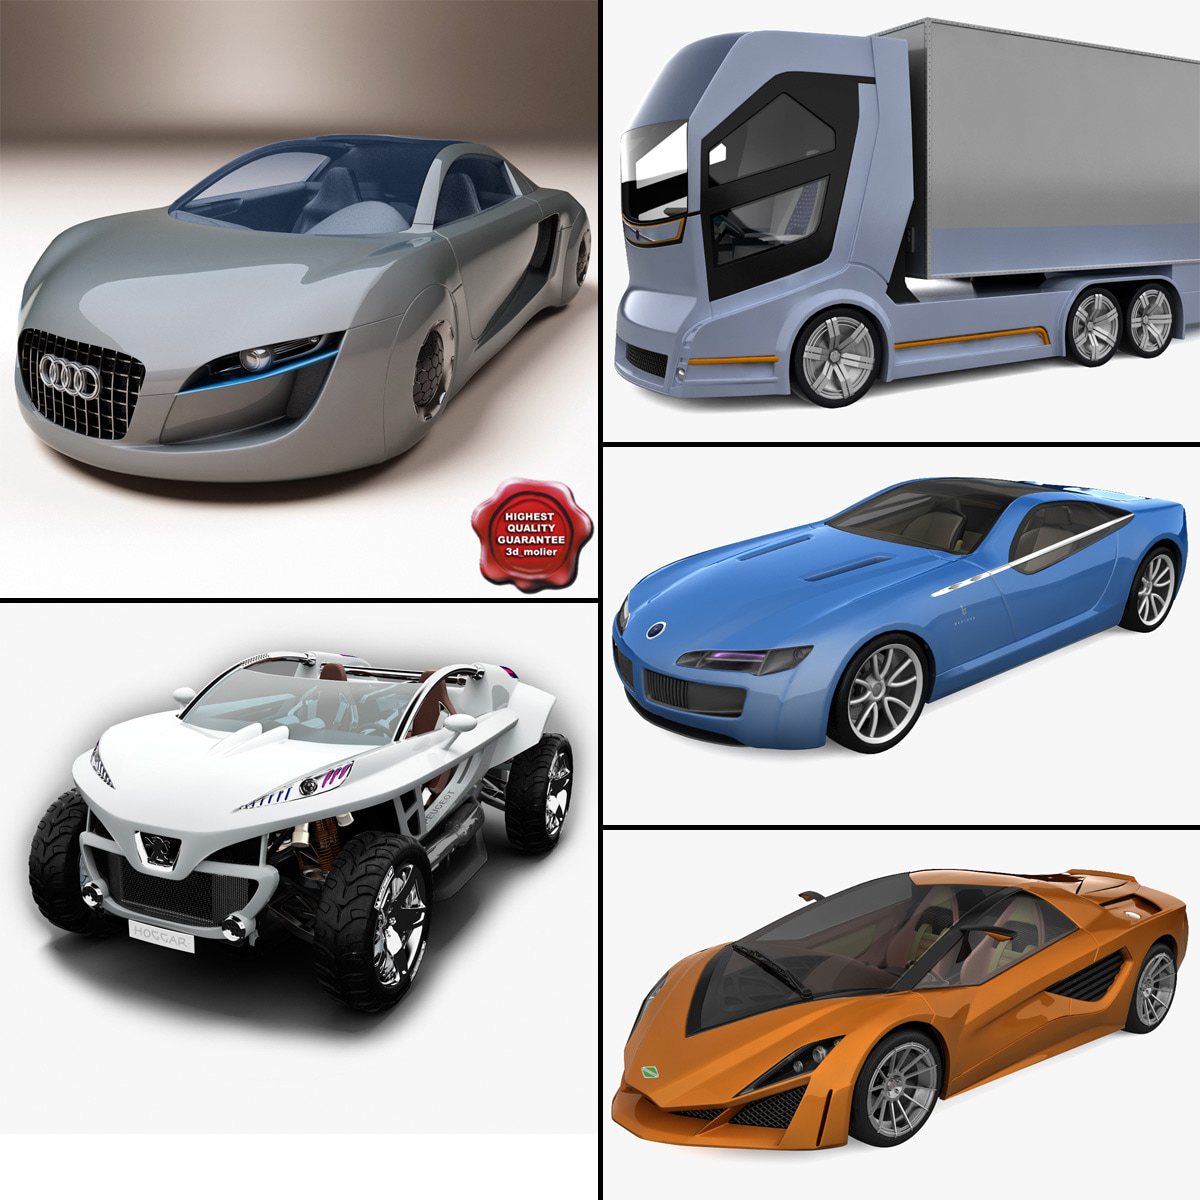 Concept_Cars_Collection_V1_000.jpg